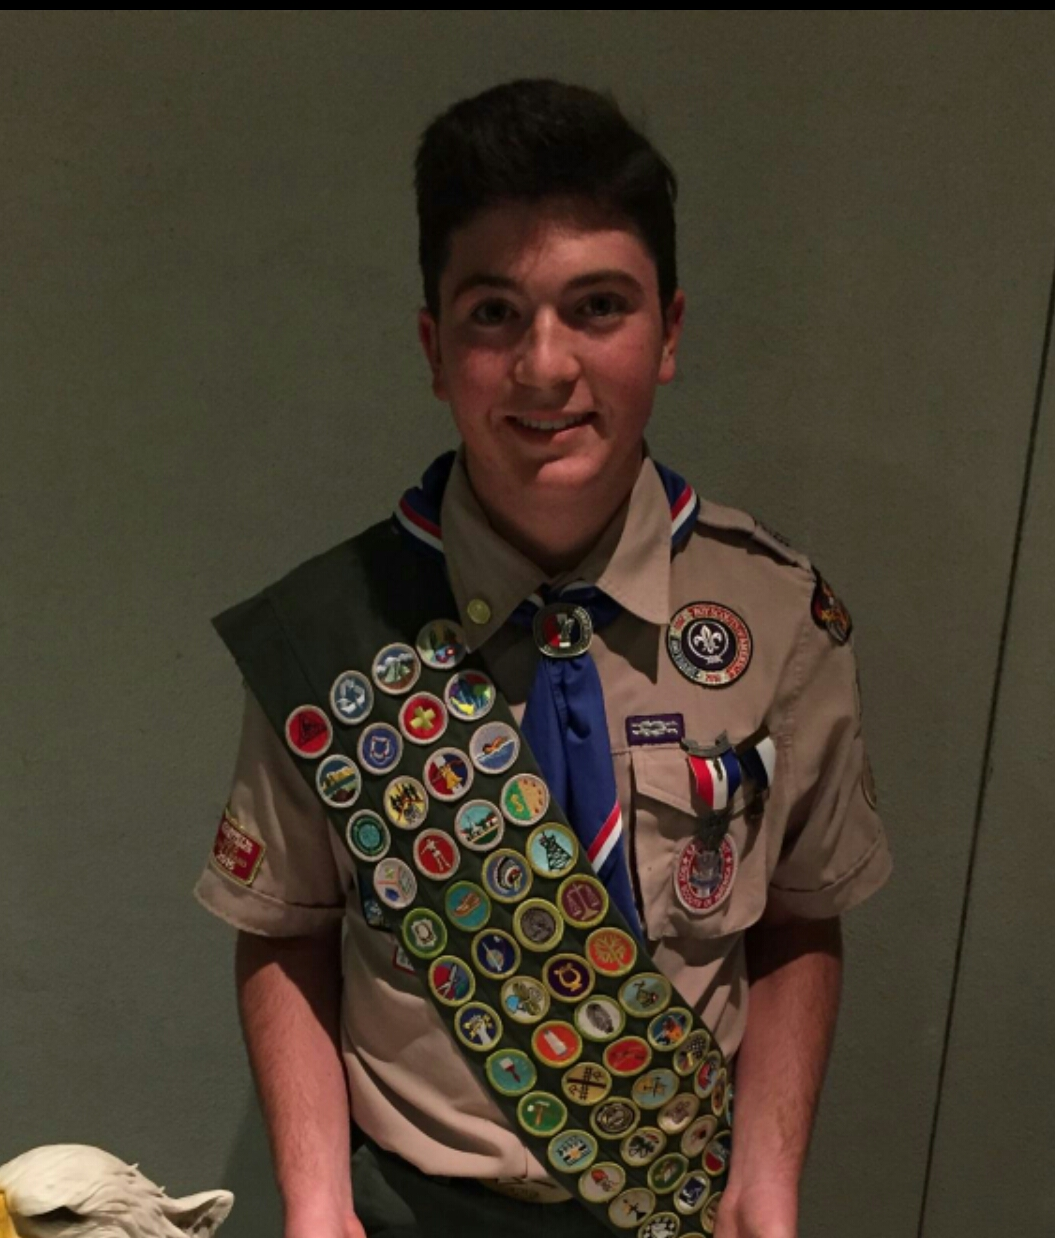 Justin Zilberstein wearing his full Eagle Scout uniform.